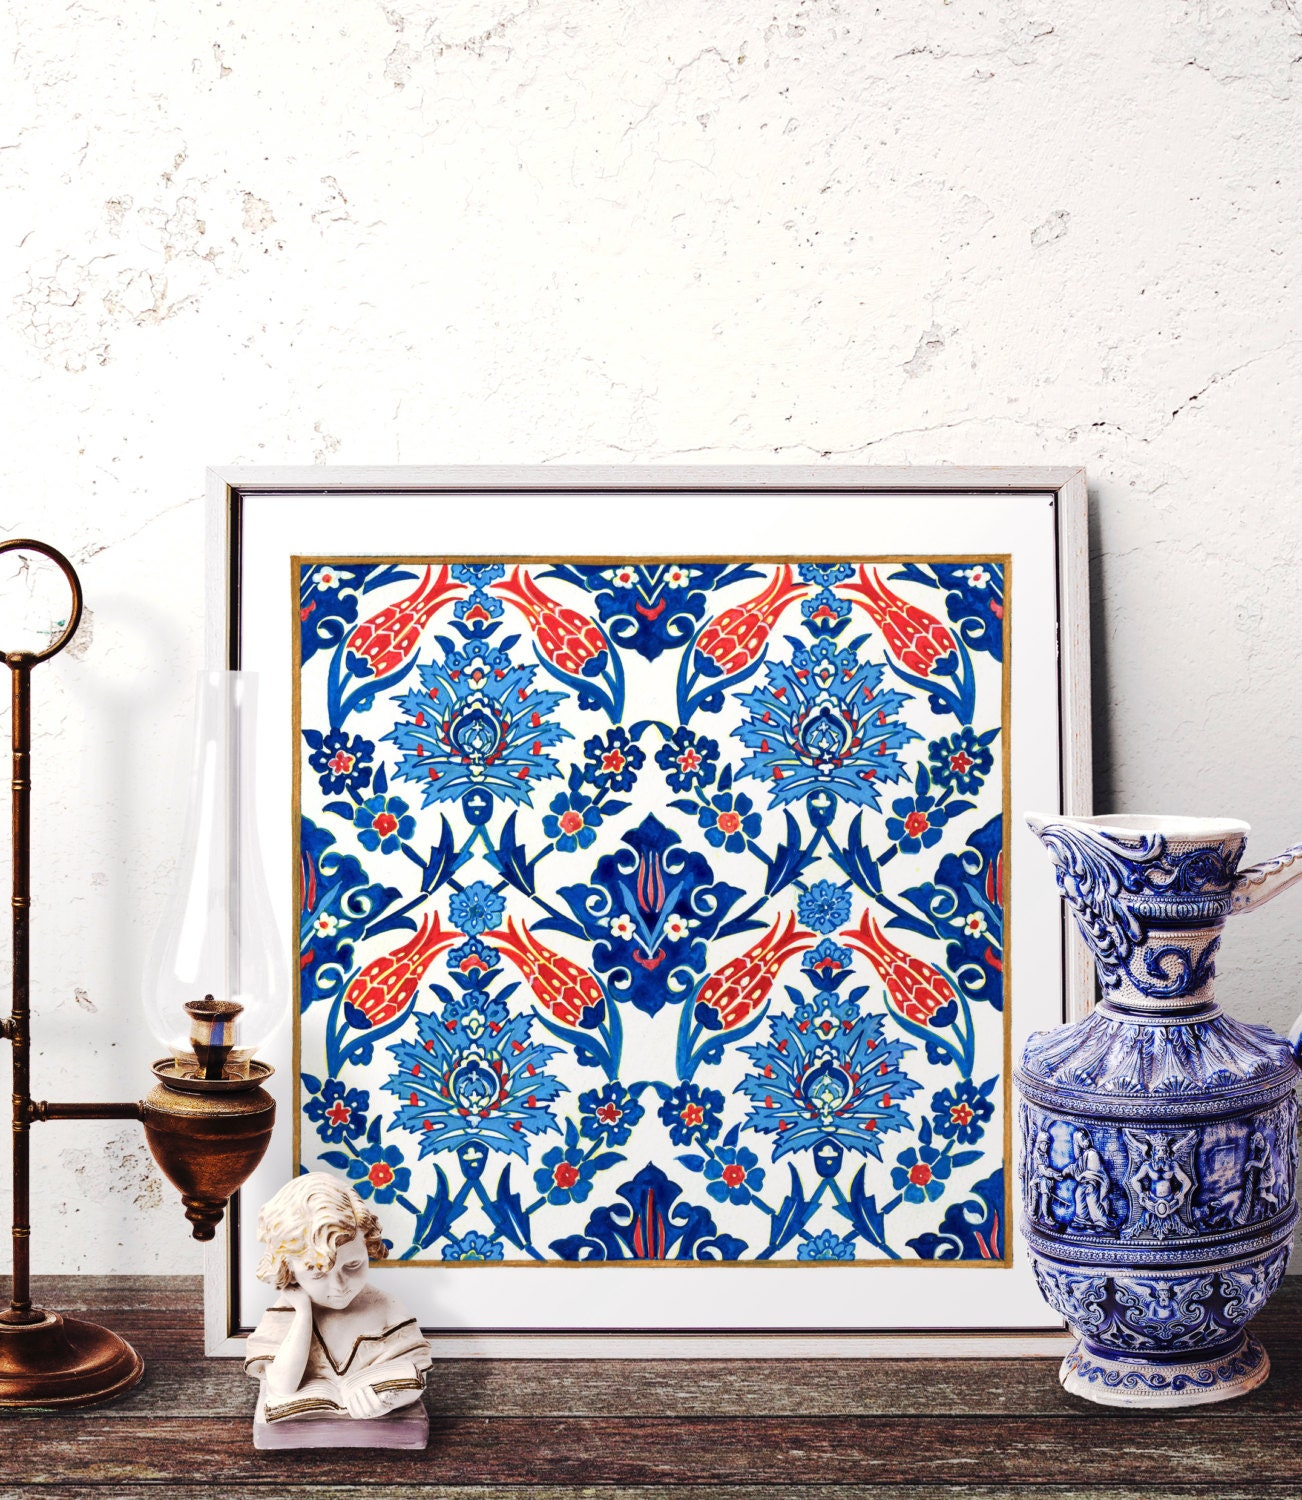 Traditional Turkish Ottoman Red Flower Home Decor Mosaic: Mosaic Tile Design Watercolor Art Traditional Turkish Ottoman